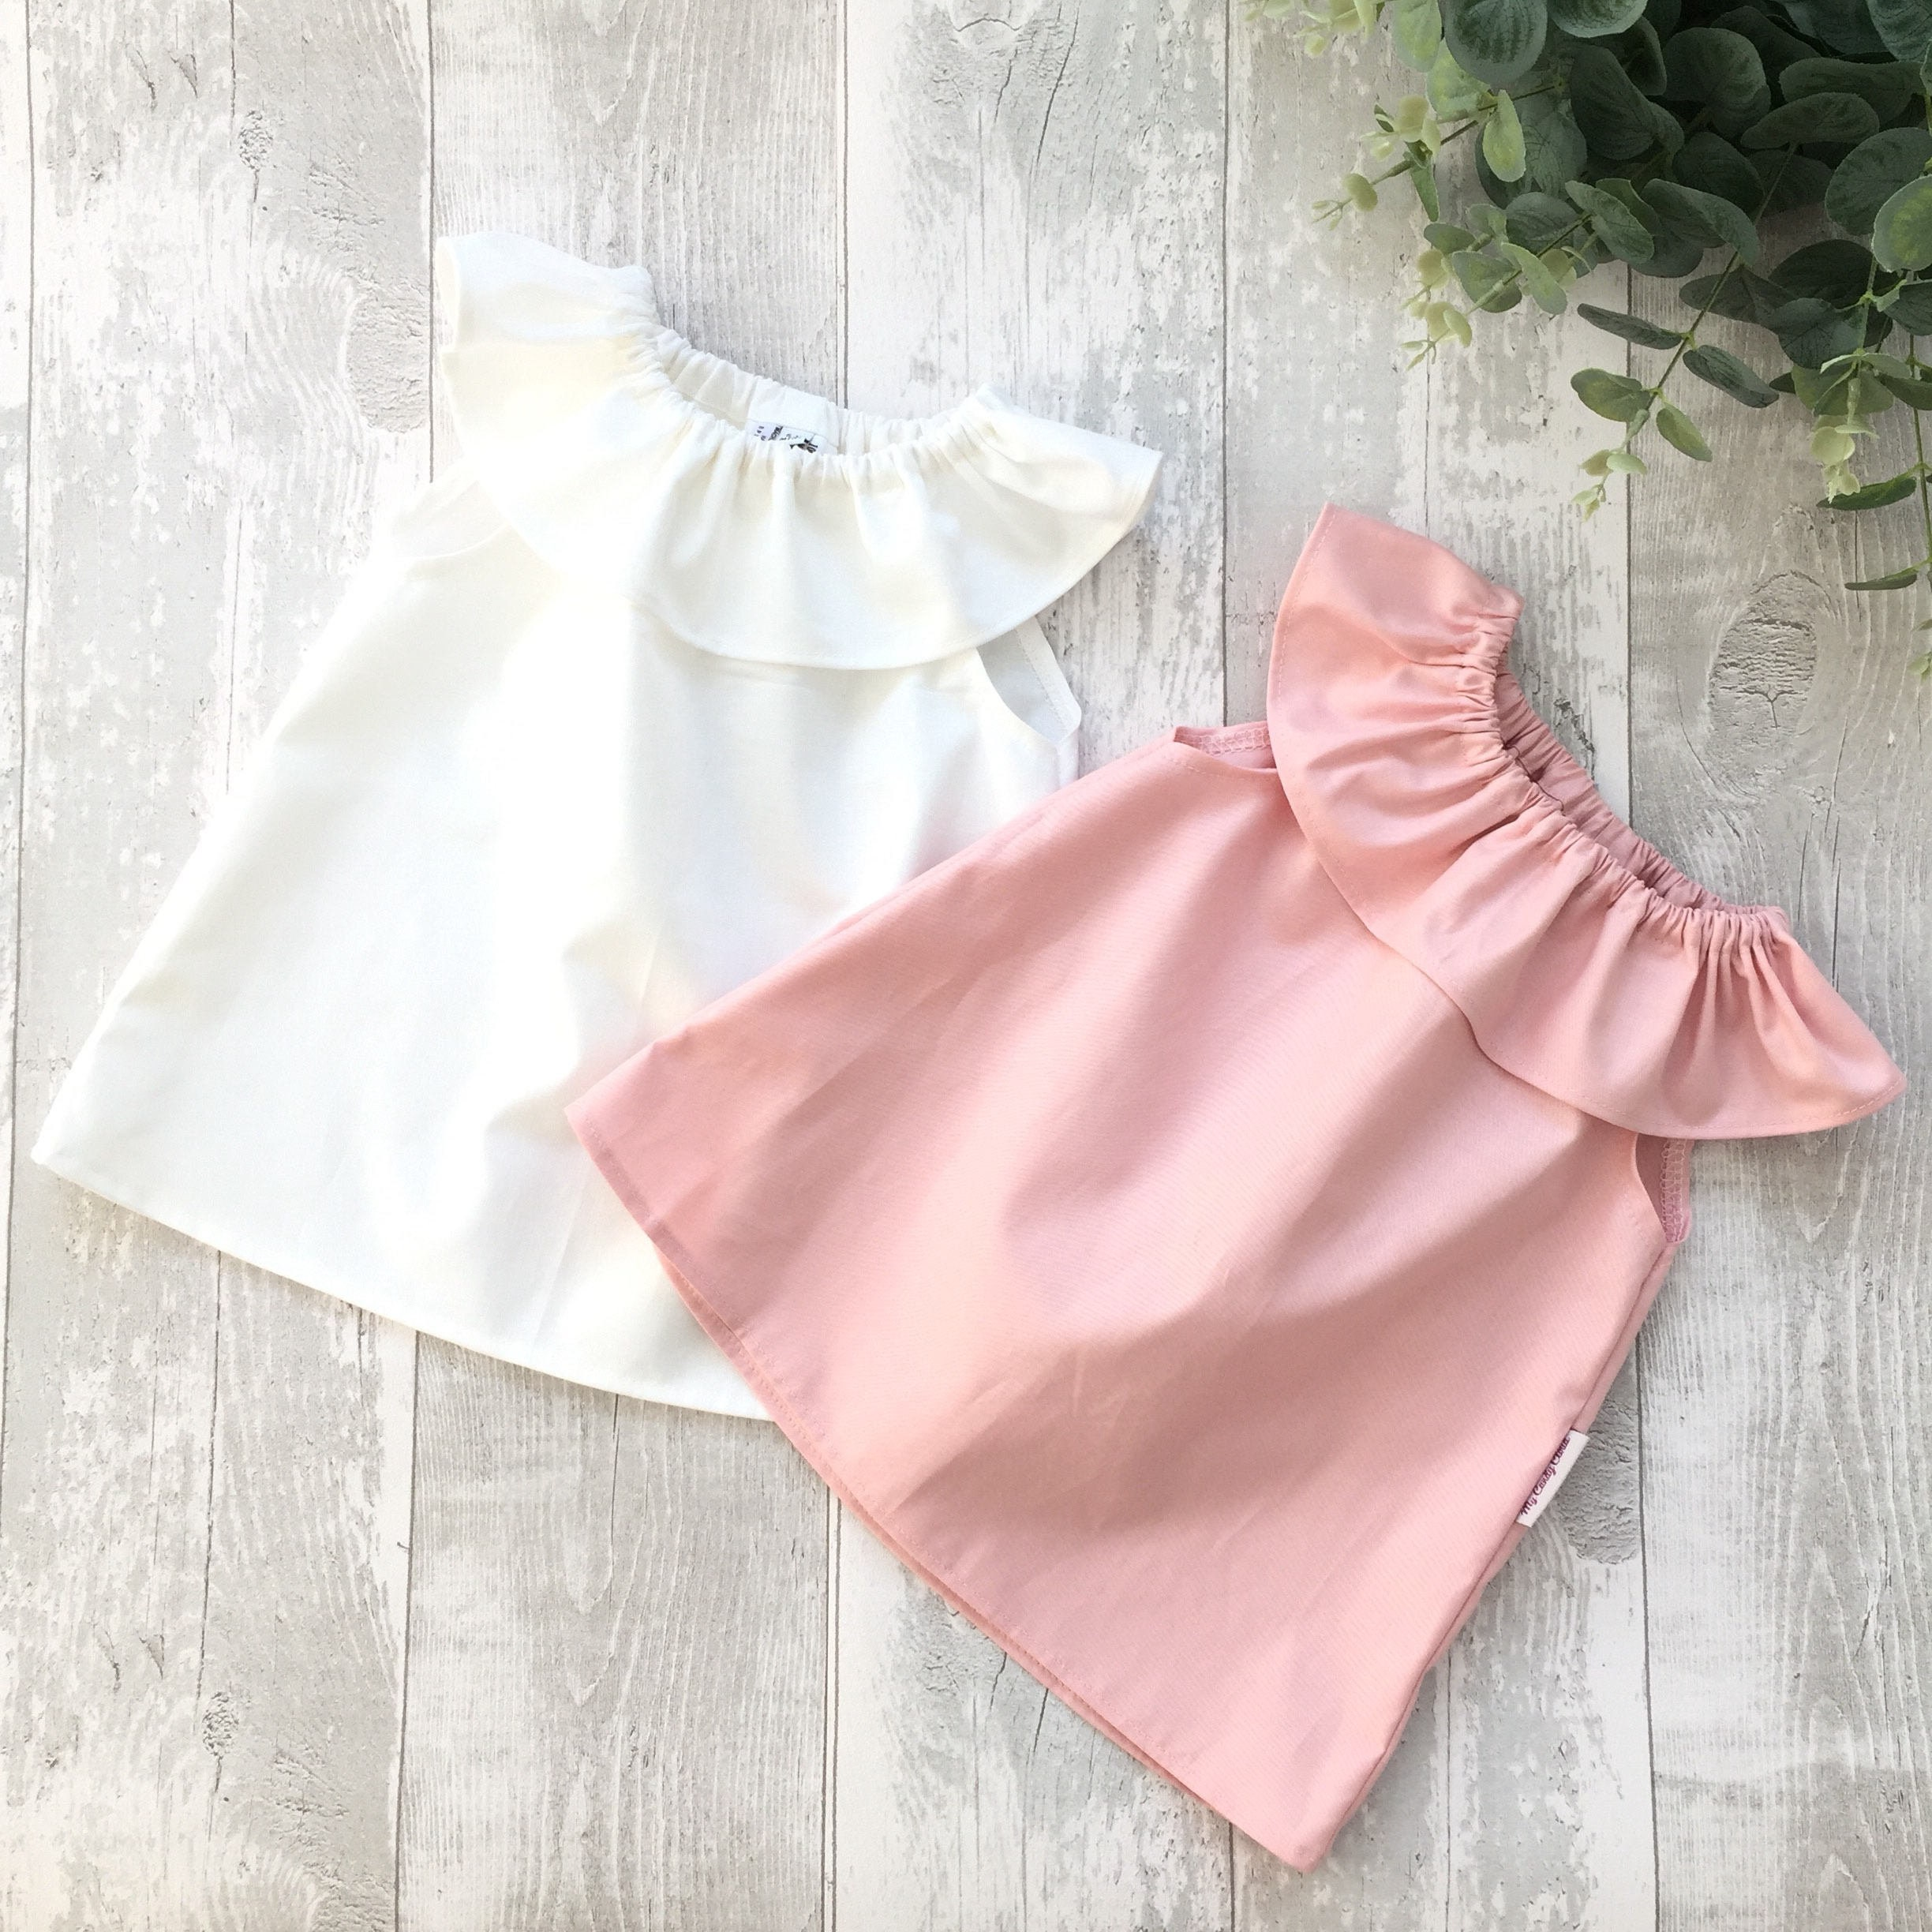 af5dfaaddc662 Ruffle collar summer top Girl baby toddler Easter lace